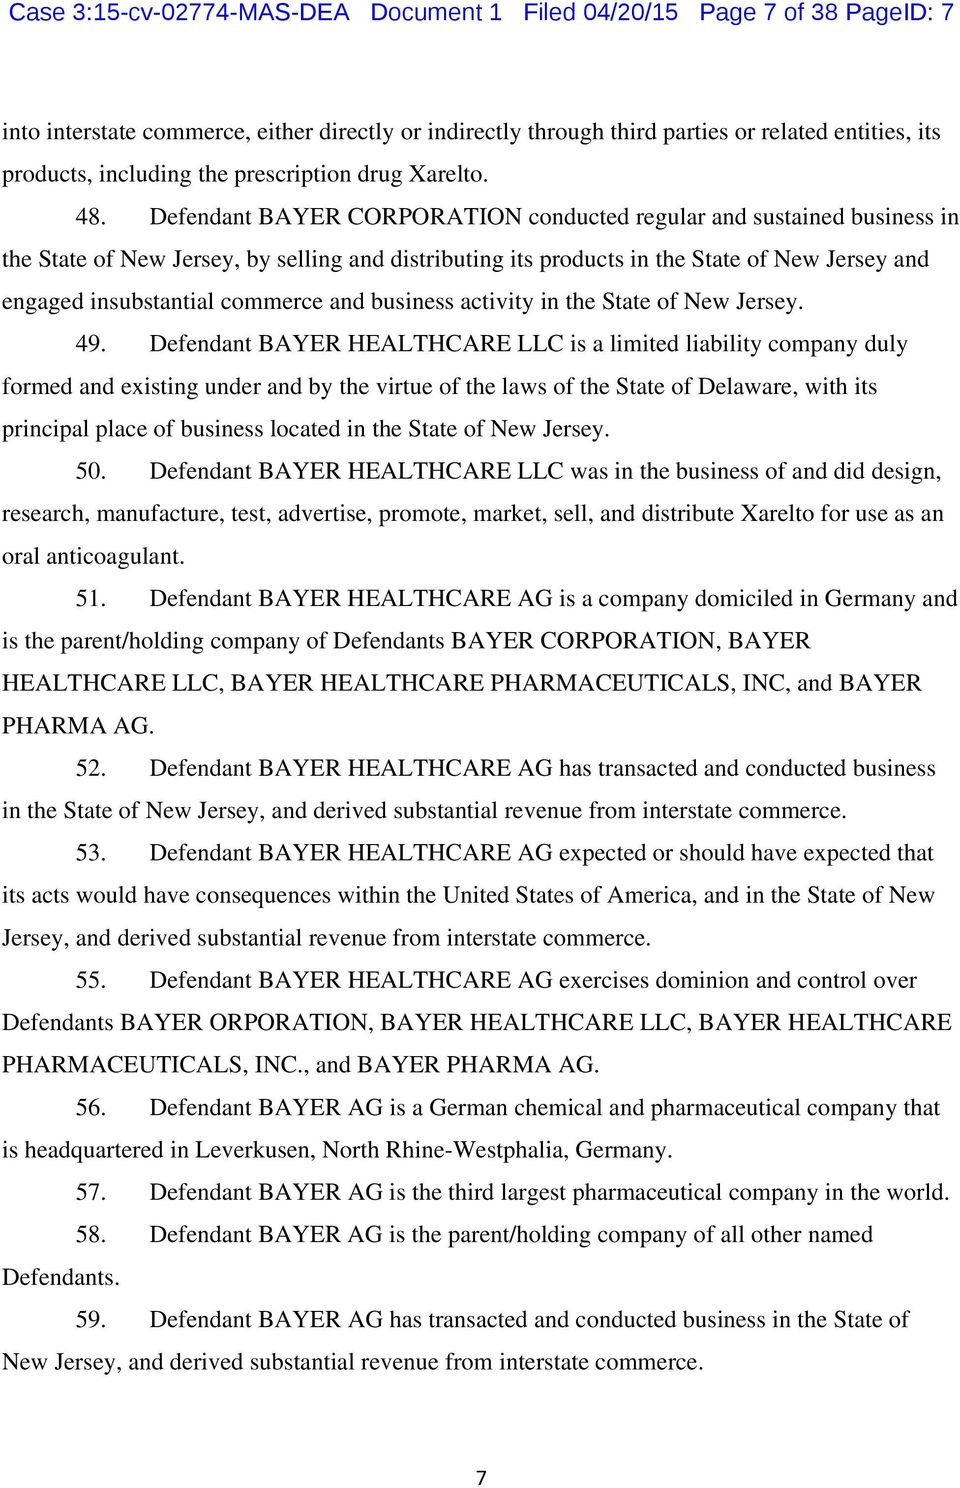 Defendant BAYER CORPORATION conducted regular and sustained business in the State of New Jersey, by selling and distributing its products in the State of New Jersey and engaged insubstantial commerce